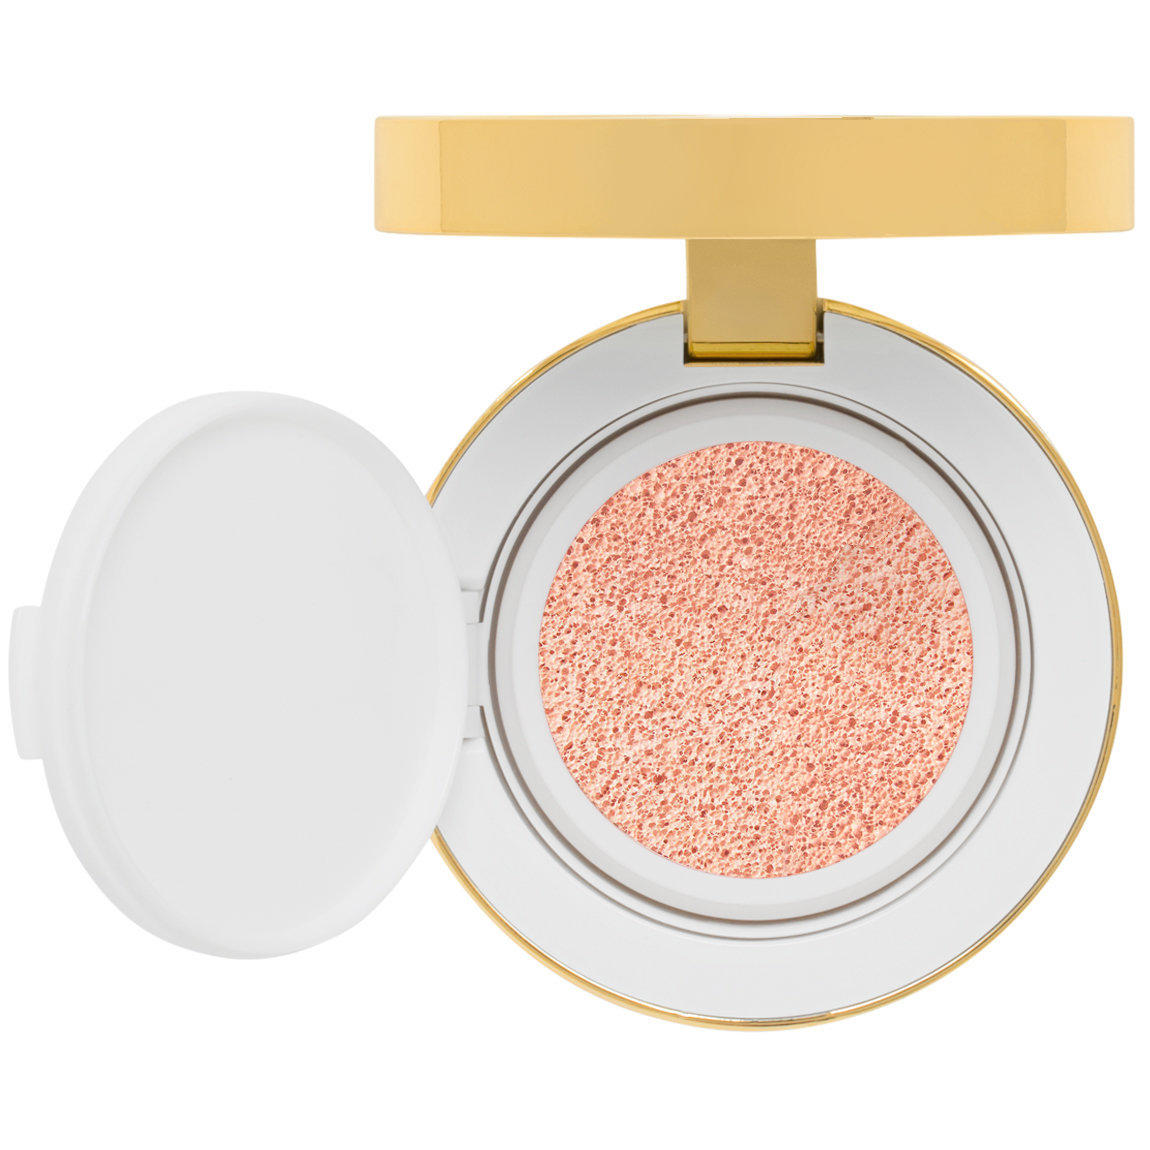 Tom Ford Soleil Foundation Hydrating Cushion Compact Rose Glow Tone Up